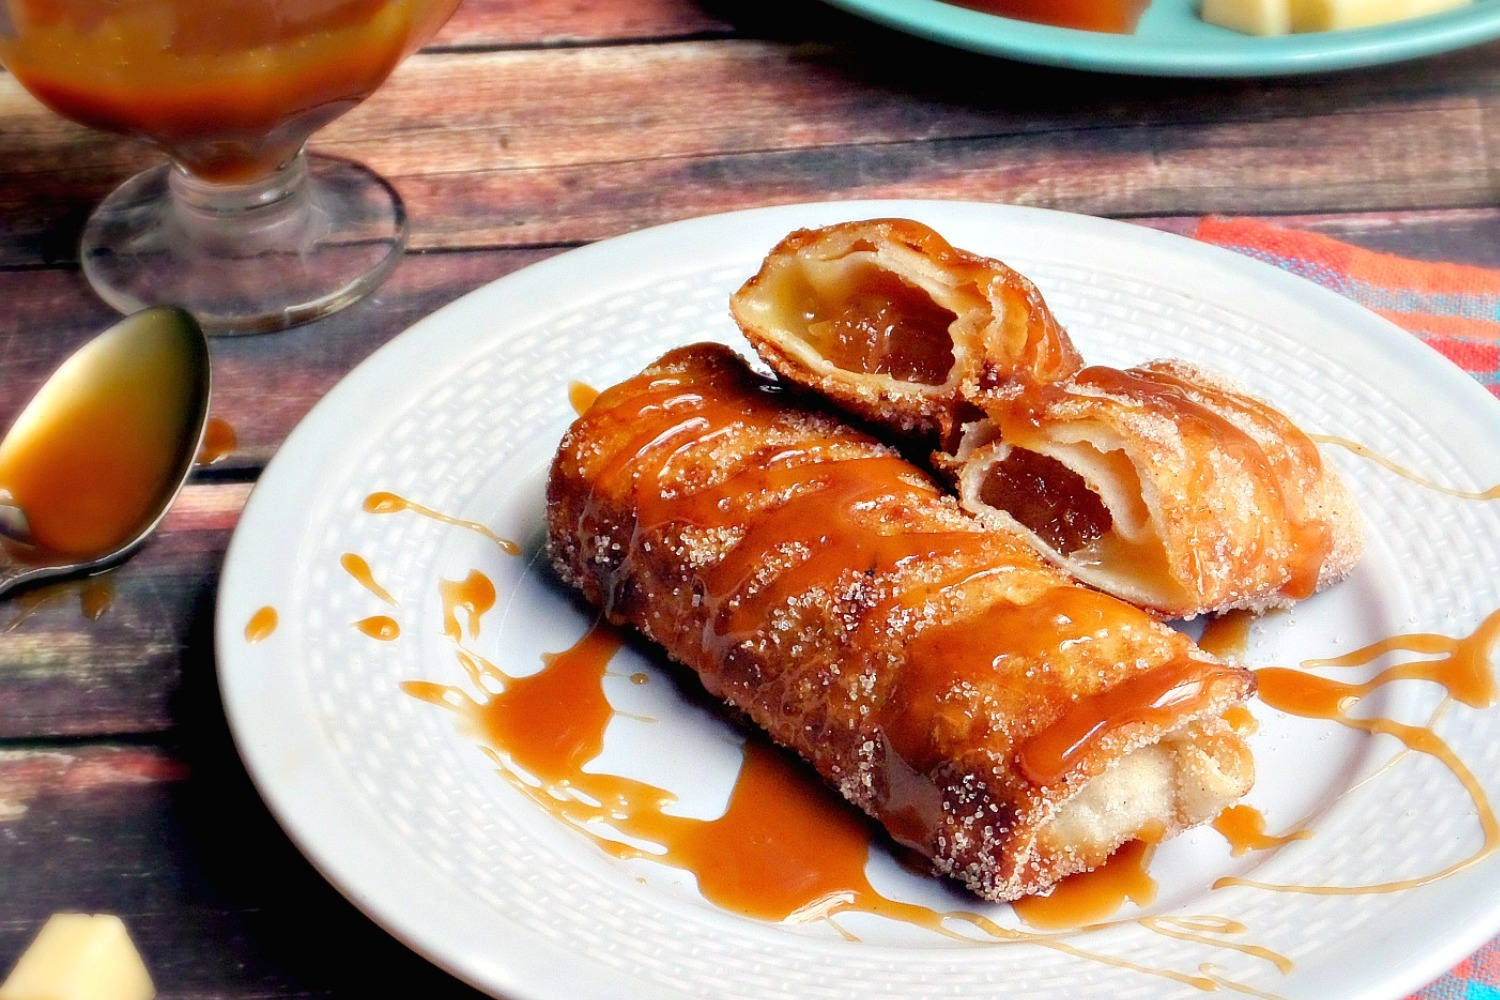 Quince Paste and Manchego Cheese Dessert Chimichangas